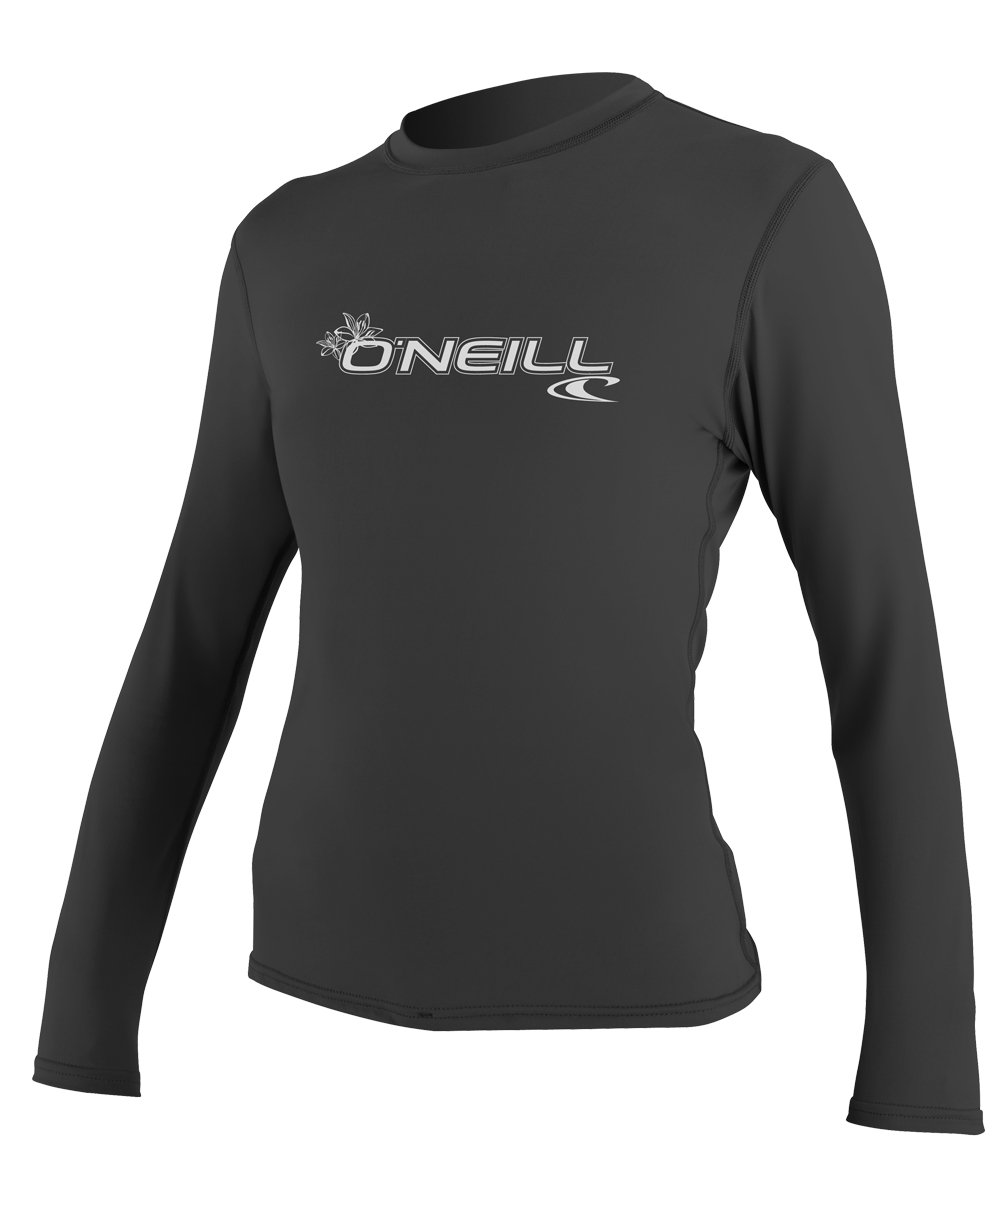 O'Neill Women's Basic Skins Upf 50+ Long Sleeve Sun Shirt, Black, X-Large by O'Neill Wetsuits